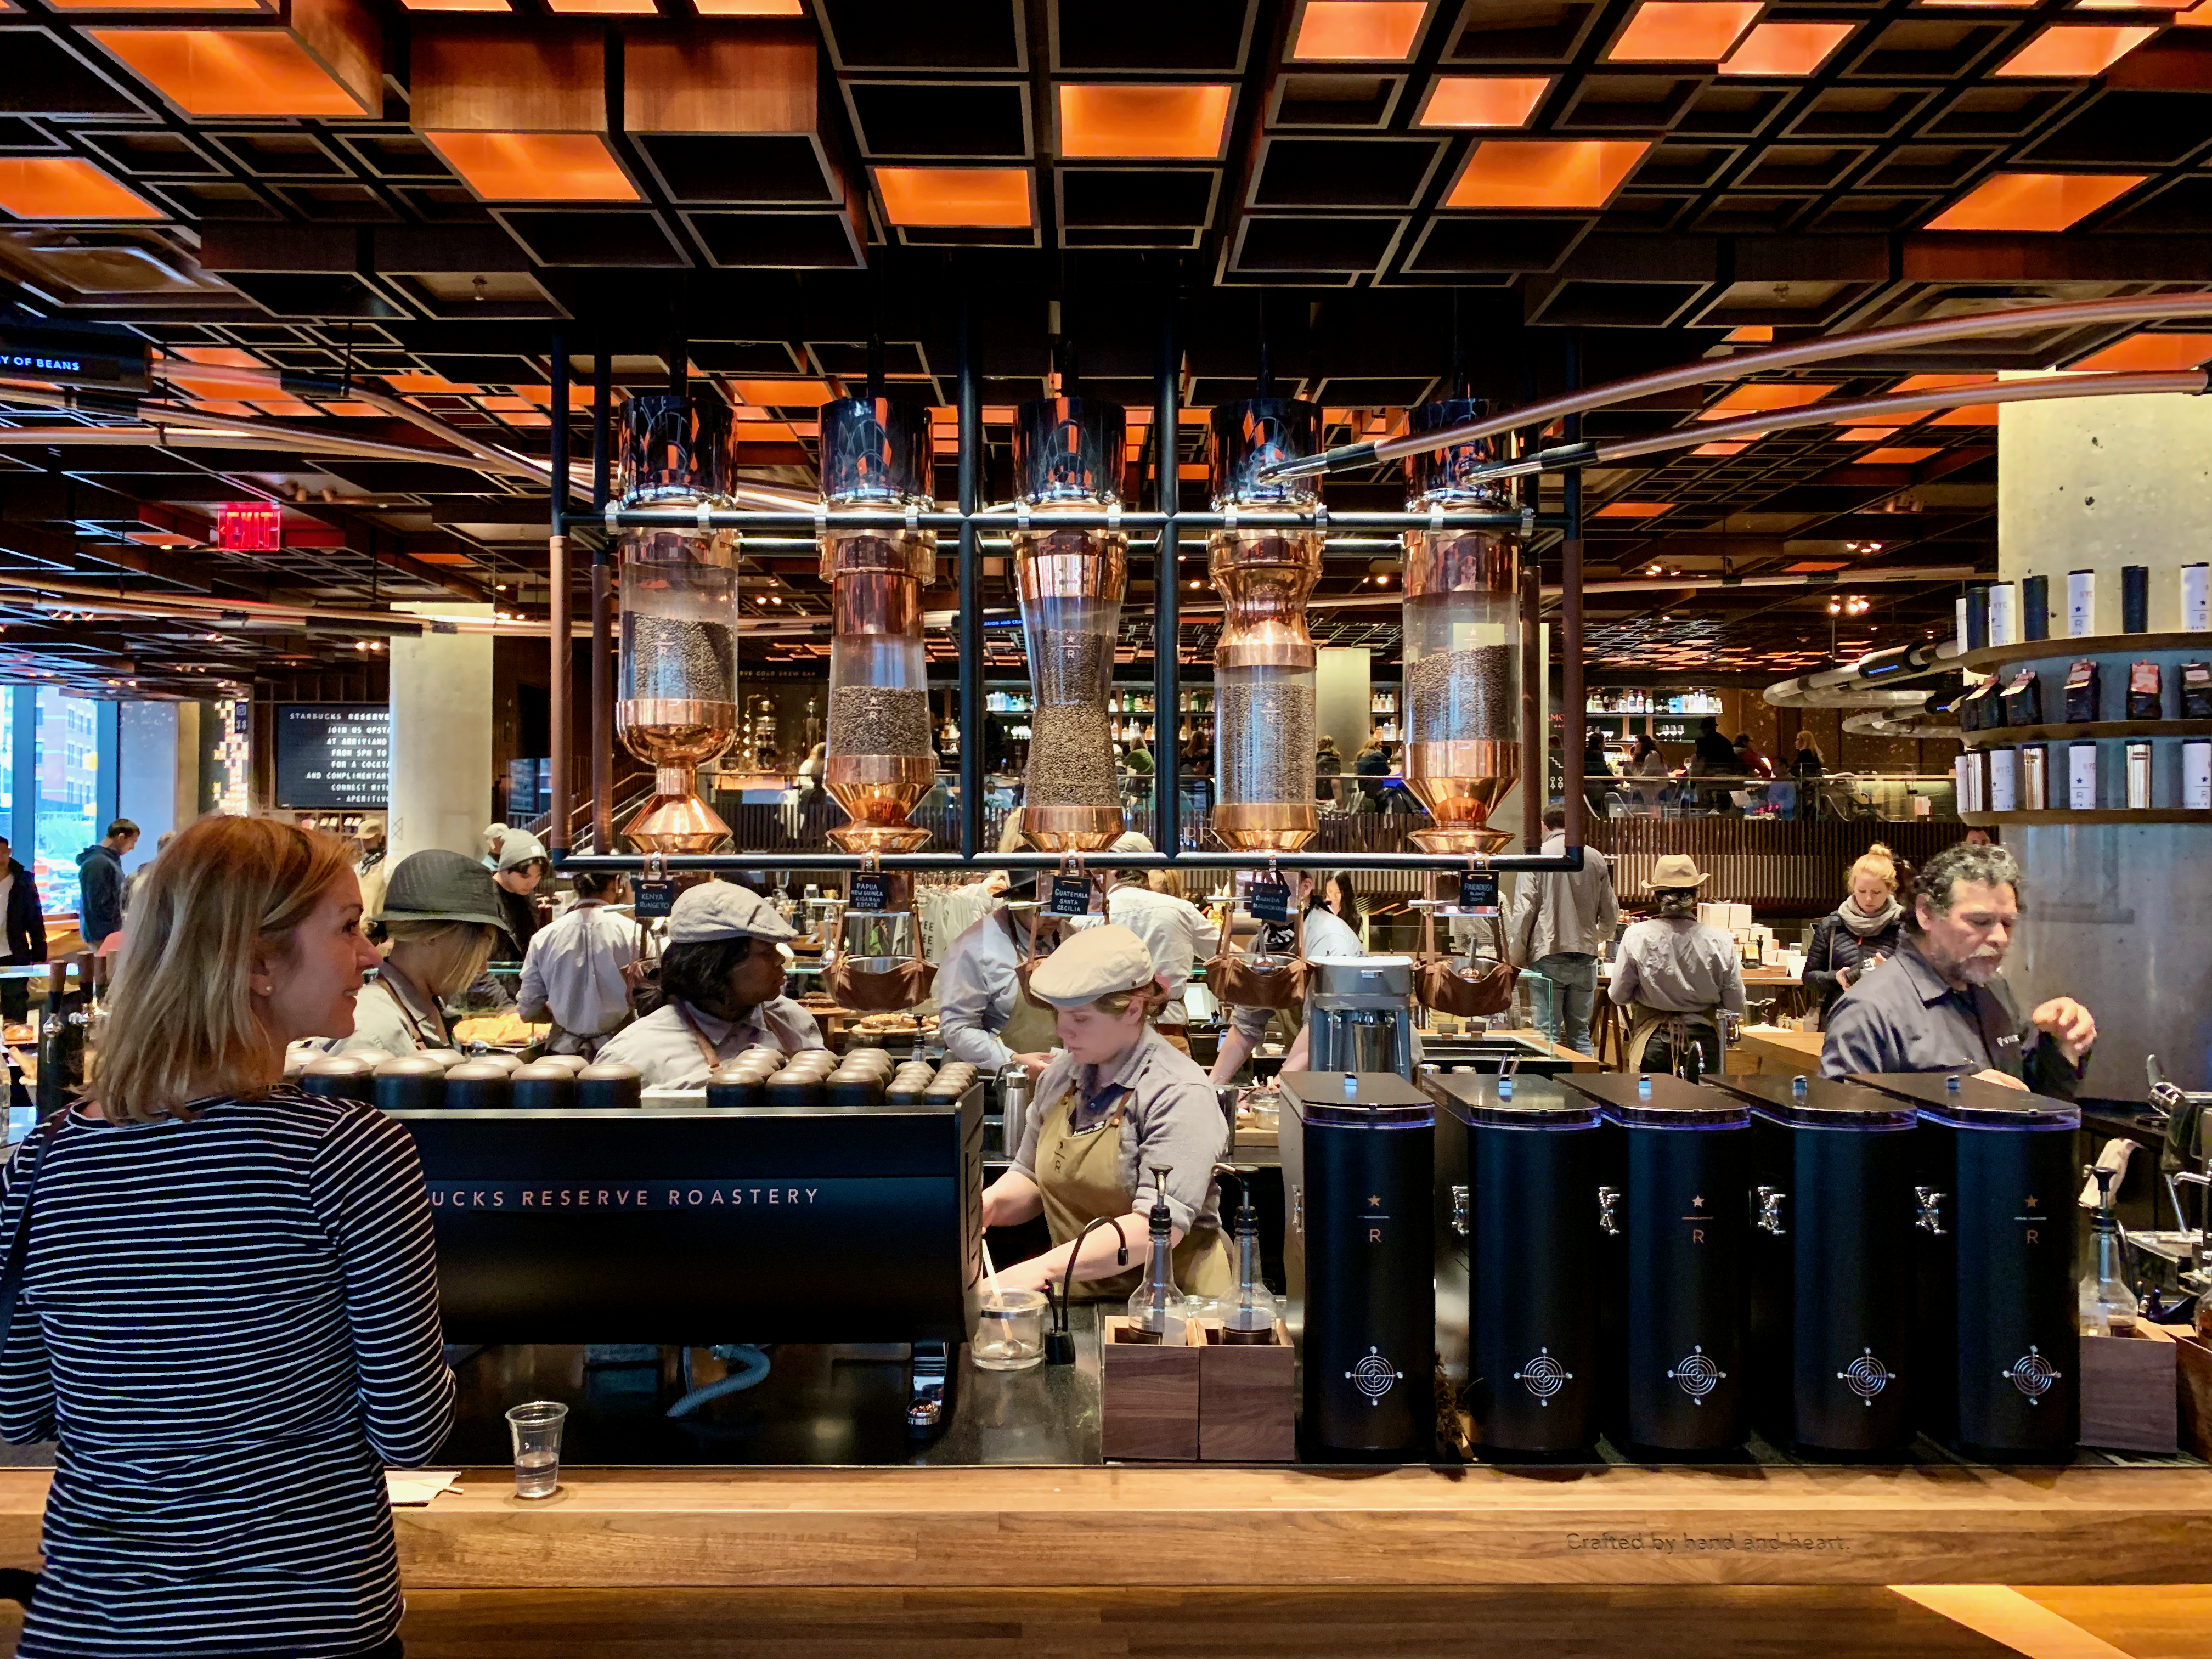 Starbucks Reserve Roastery Meatpacking District